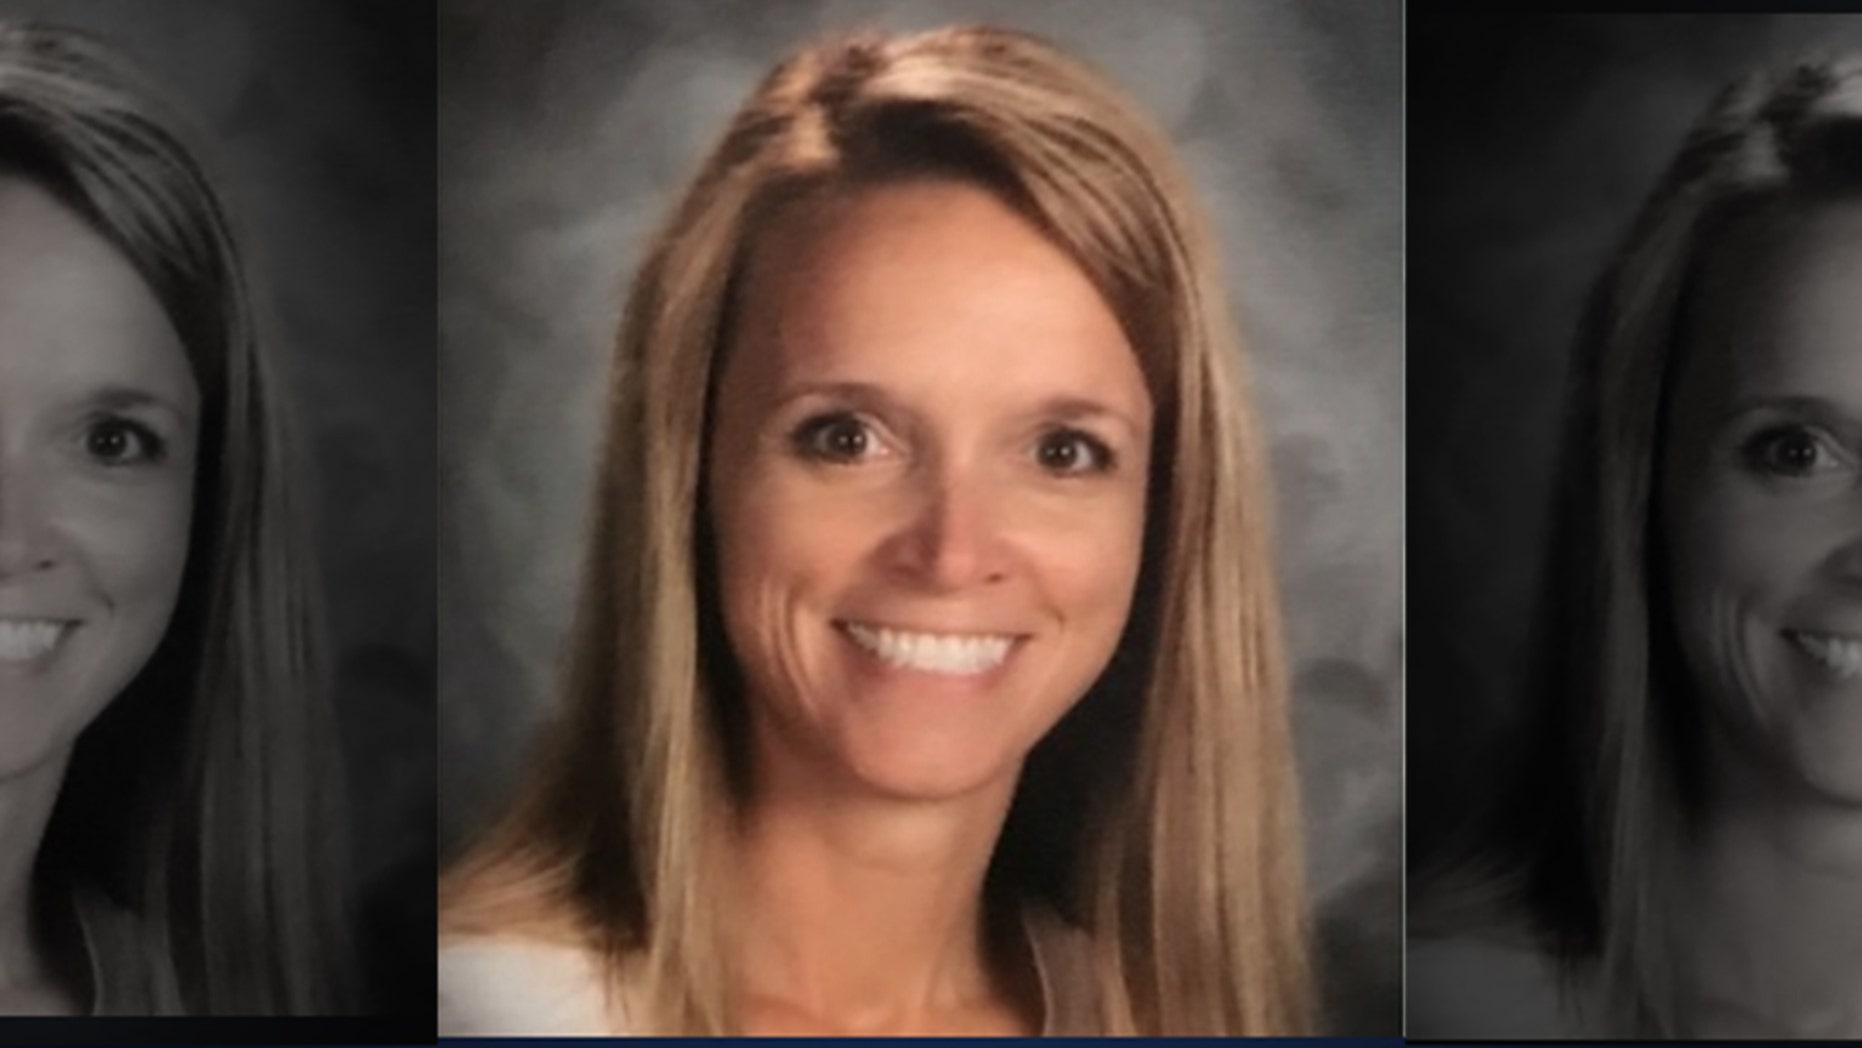 Casey Smitherman, superintendent of Elwood Community Schools, resigned on Friday after she allegedly used her own insurance to help a sick student.